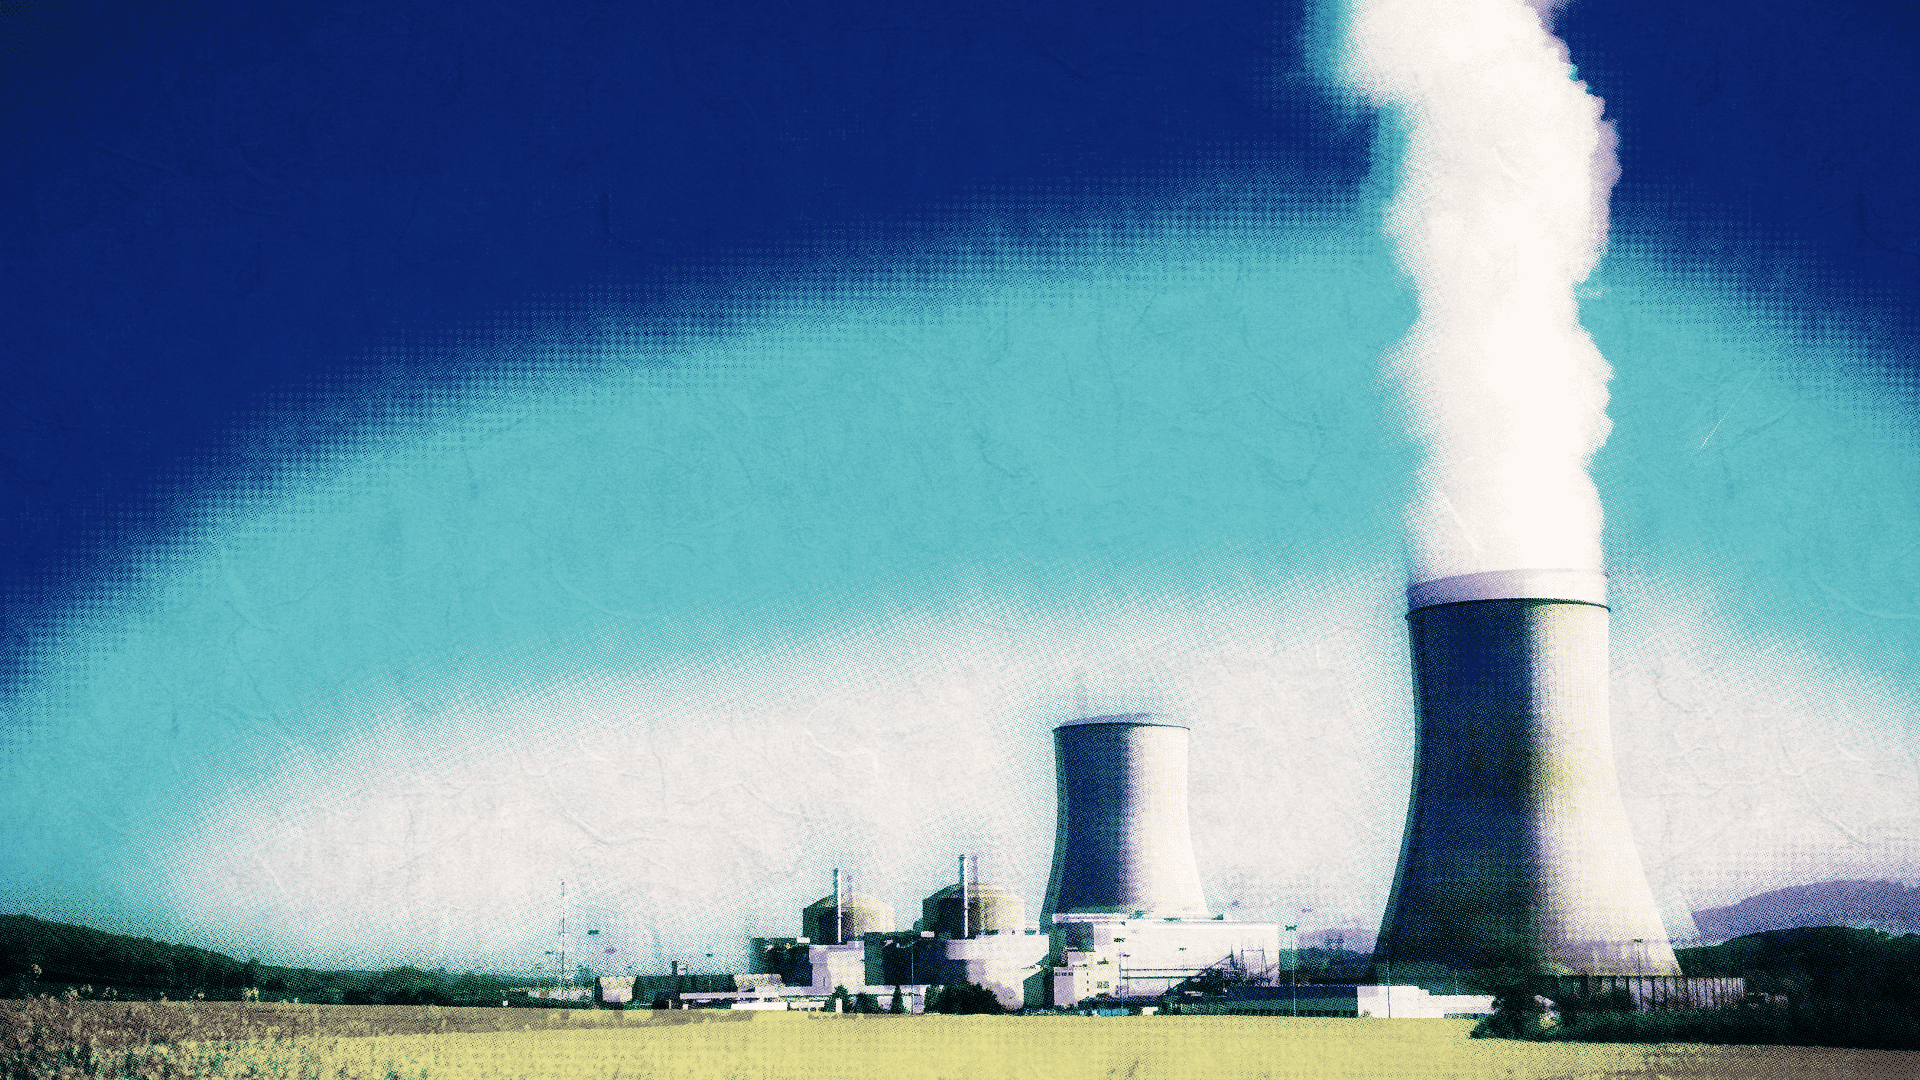 Nuclear power plants. // AMERICA FIRST ON CARBON EMISSIONS